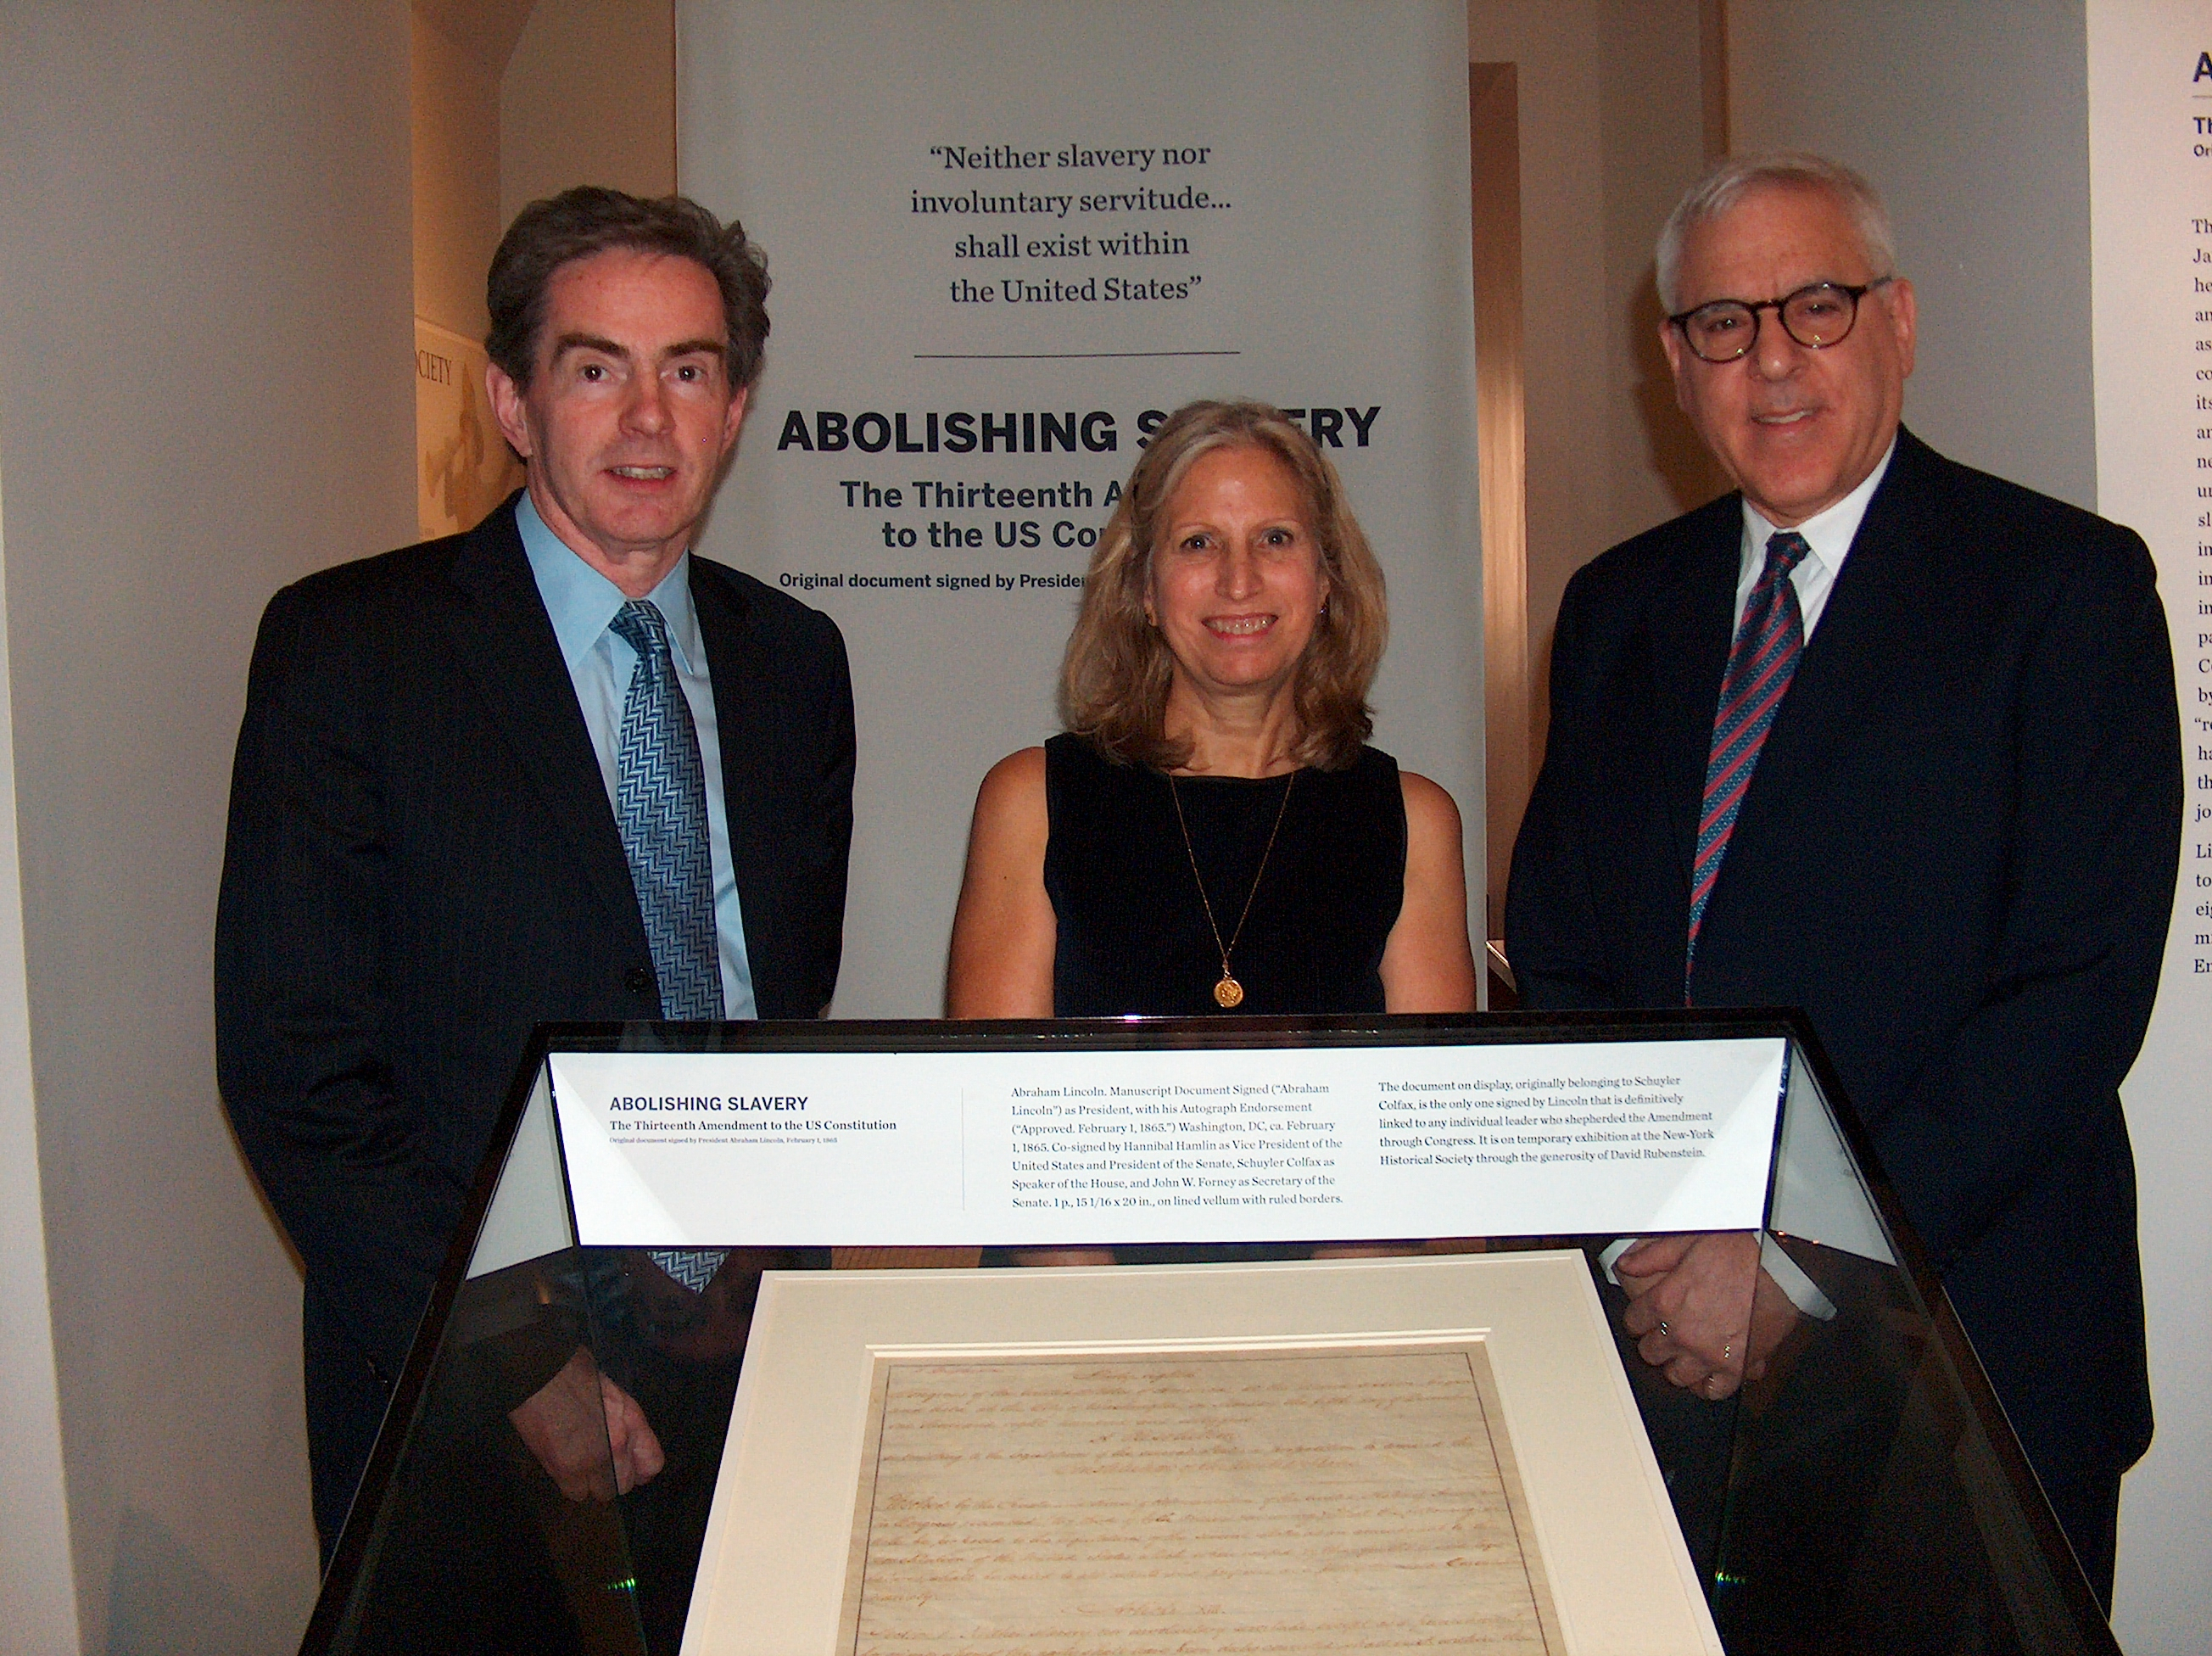 The New-York Historical Society unveiled a rare handwritten copy of the Thirteenth Amendment to the Constitution signed by Abraham Lincoln.